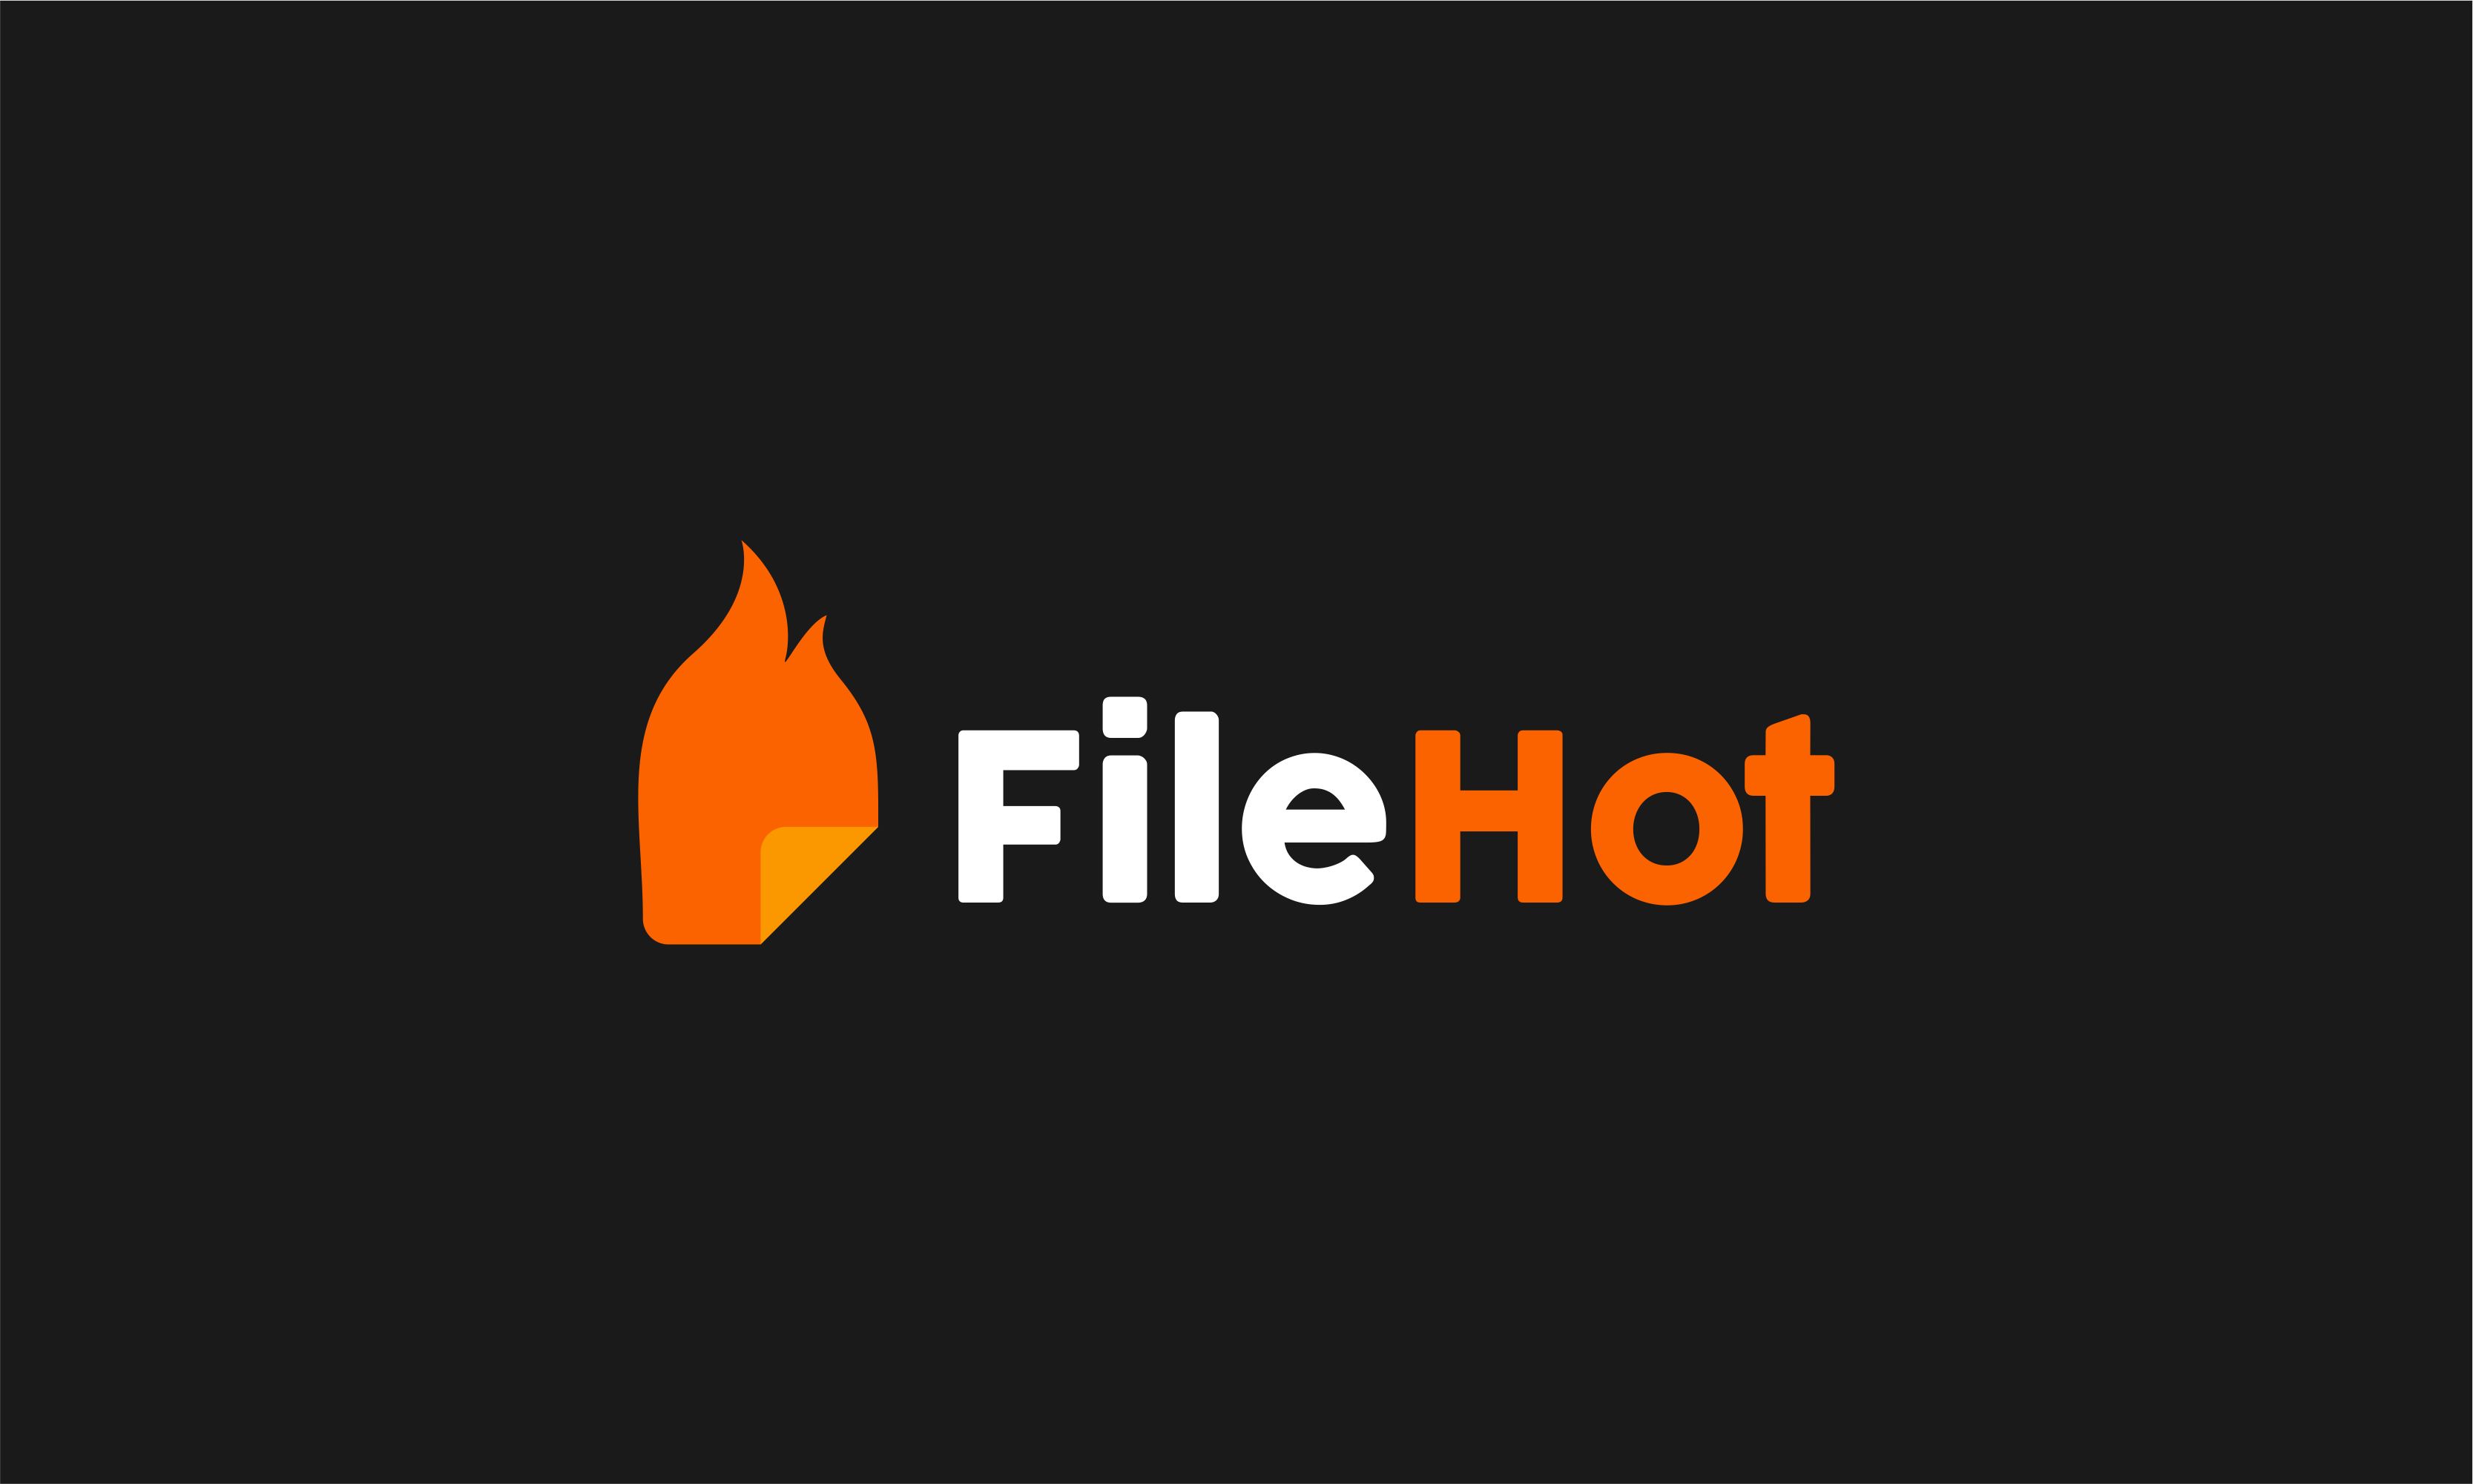 Filehot